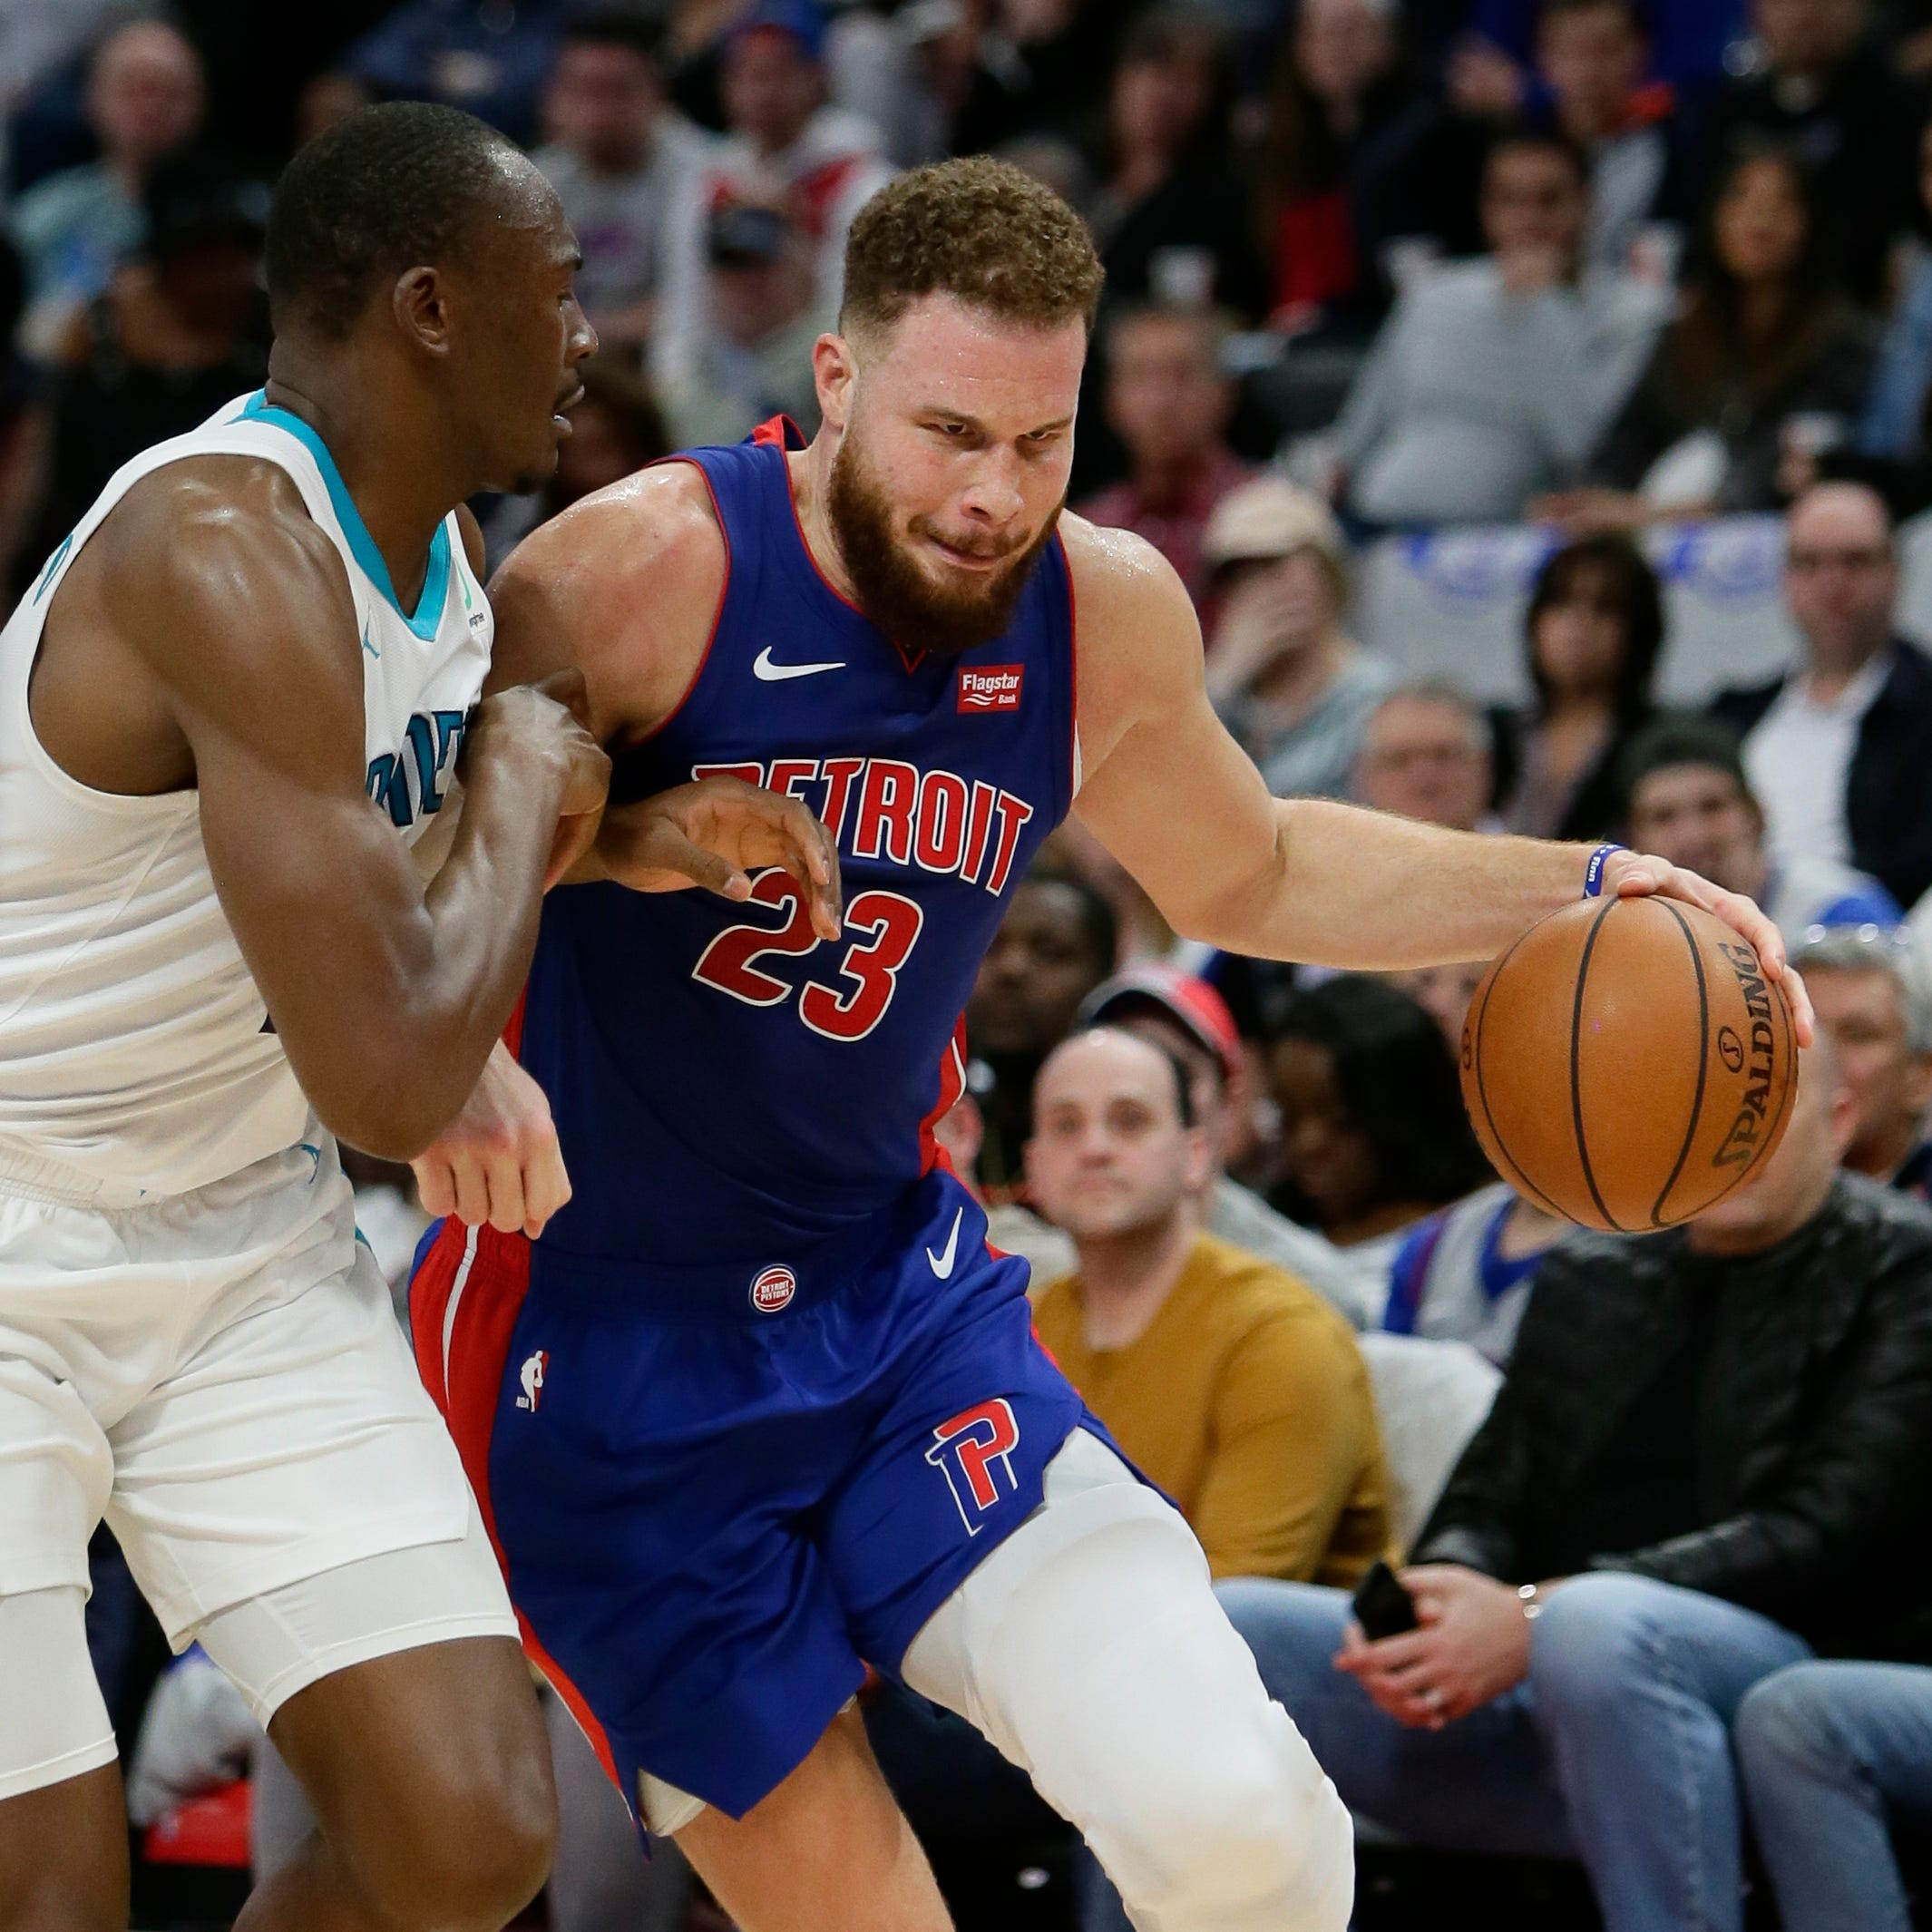 Pistons miss chance to clinch playoff spot, lose to Hornets